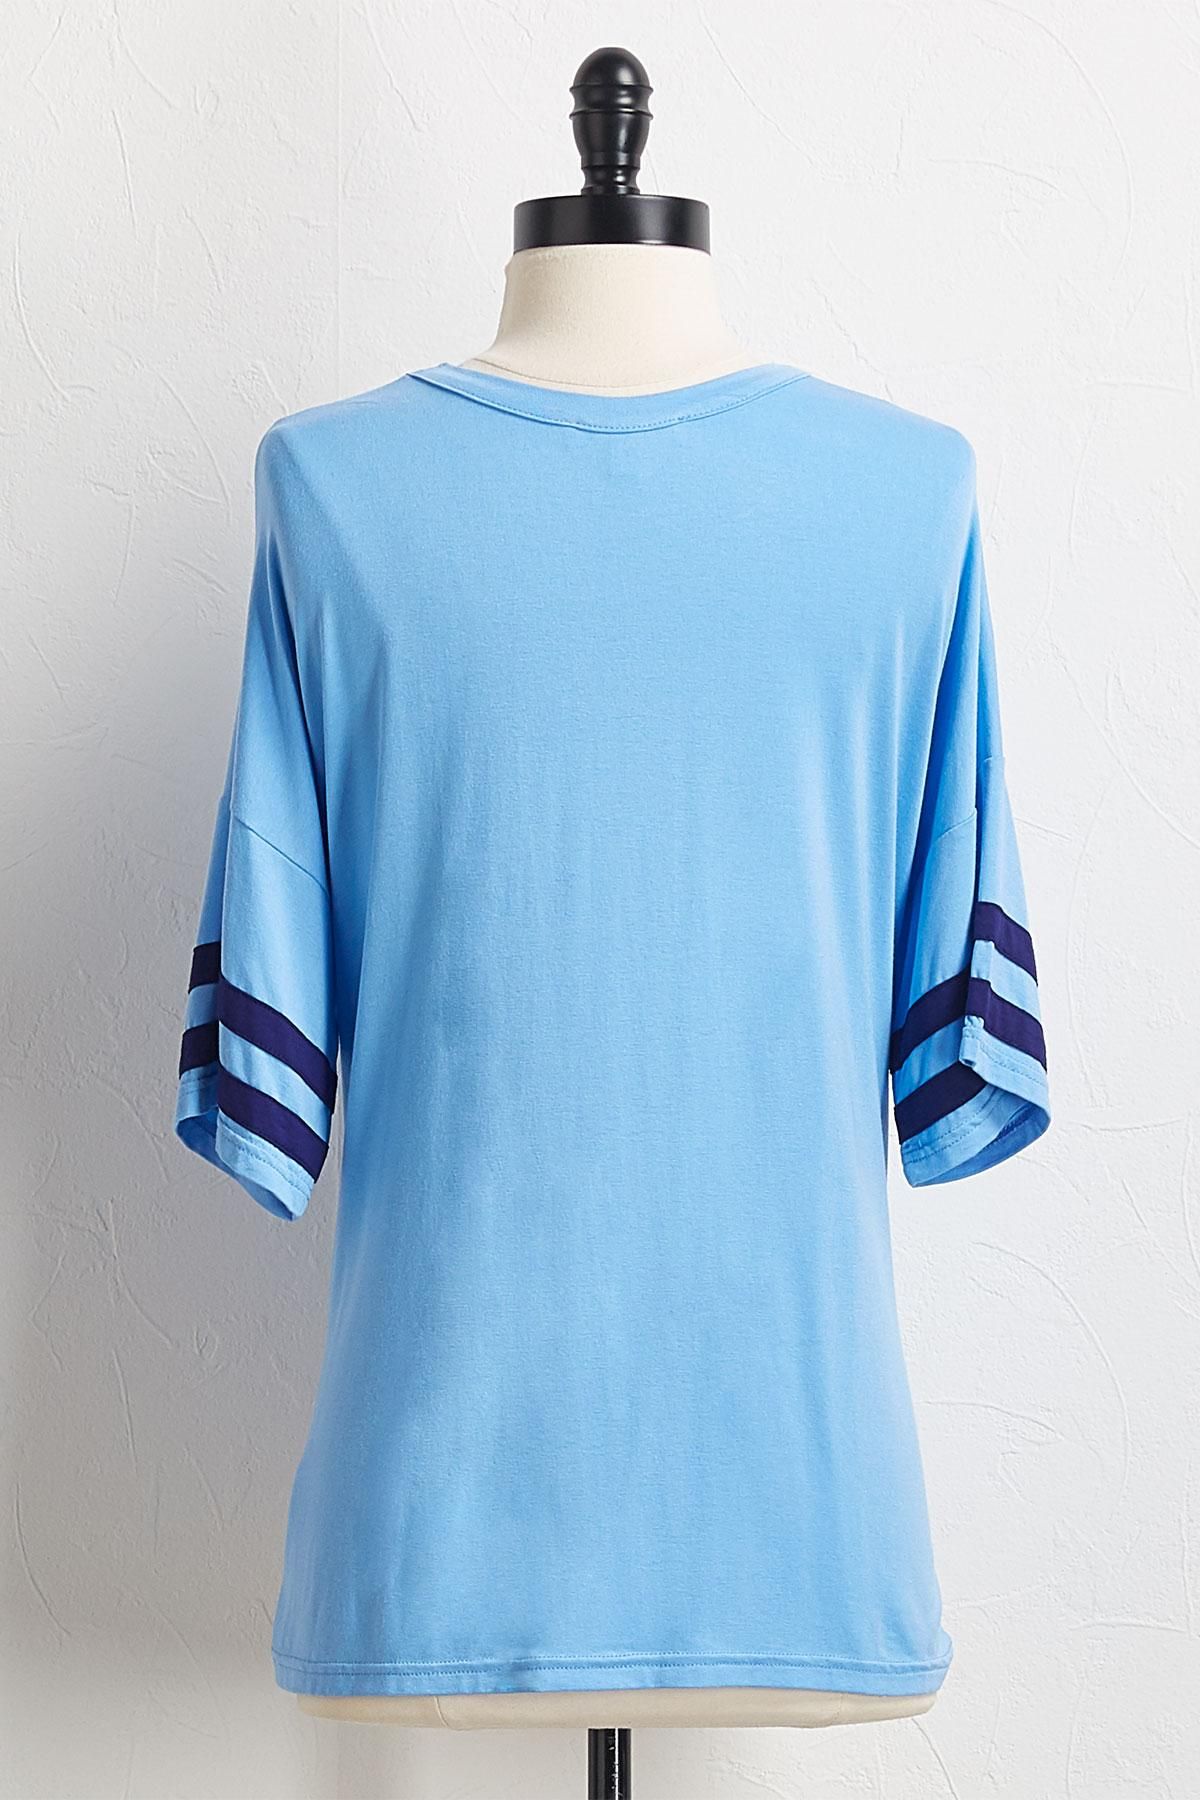 Knotted Striped Athletic Tee